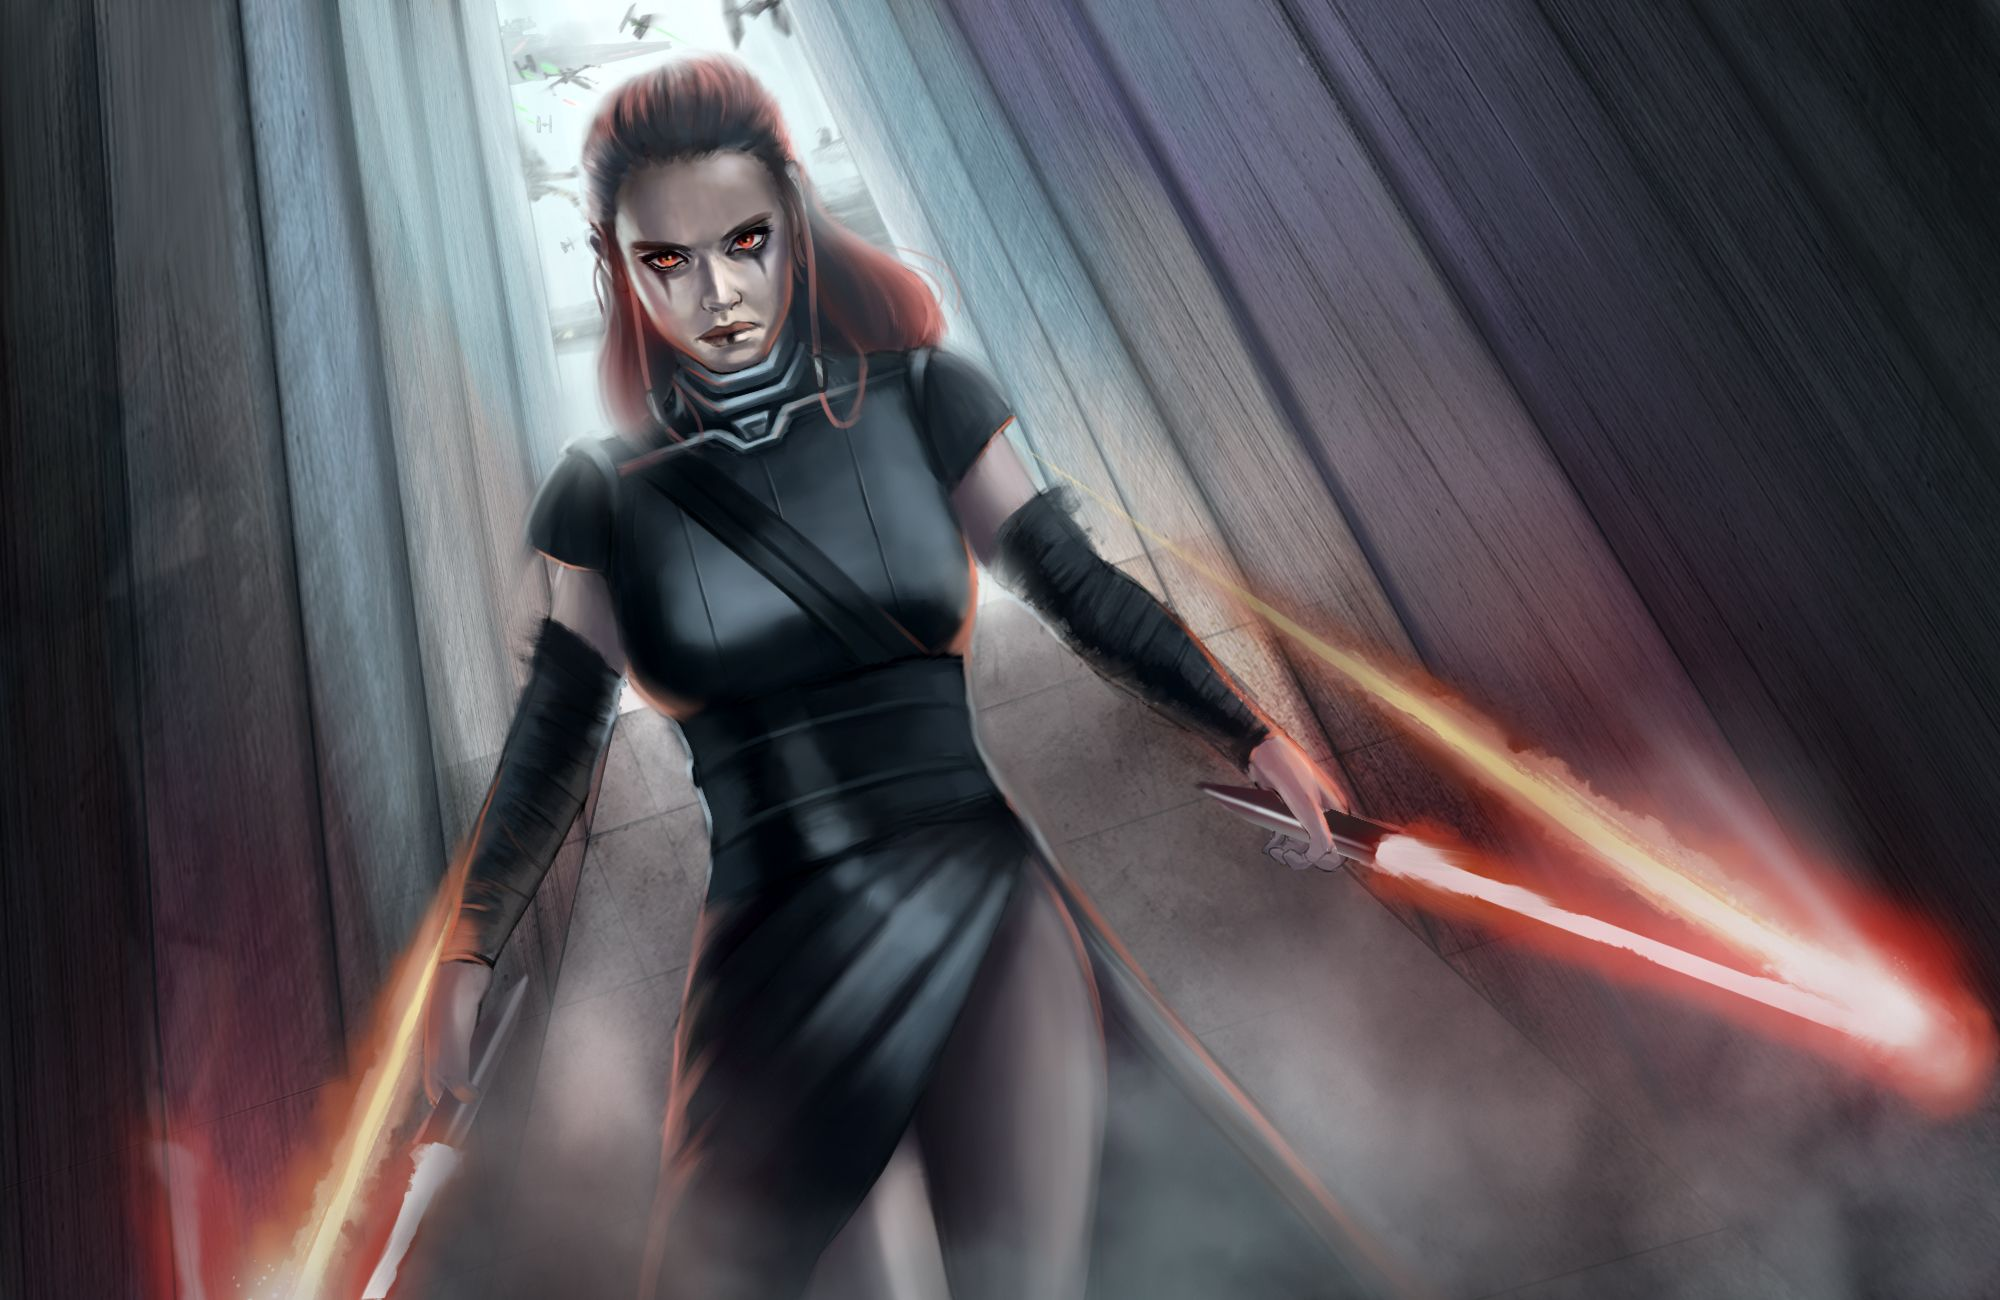 Star Wars Girl Wallpapers Top Free Star Wars Girl Backgrounds Wallpaperaccess